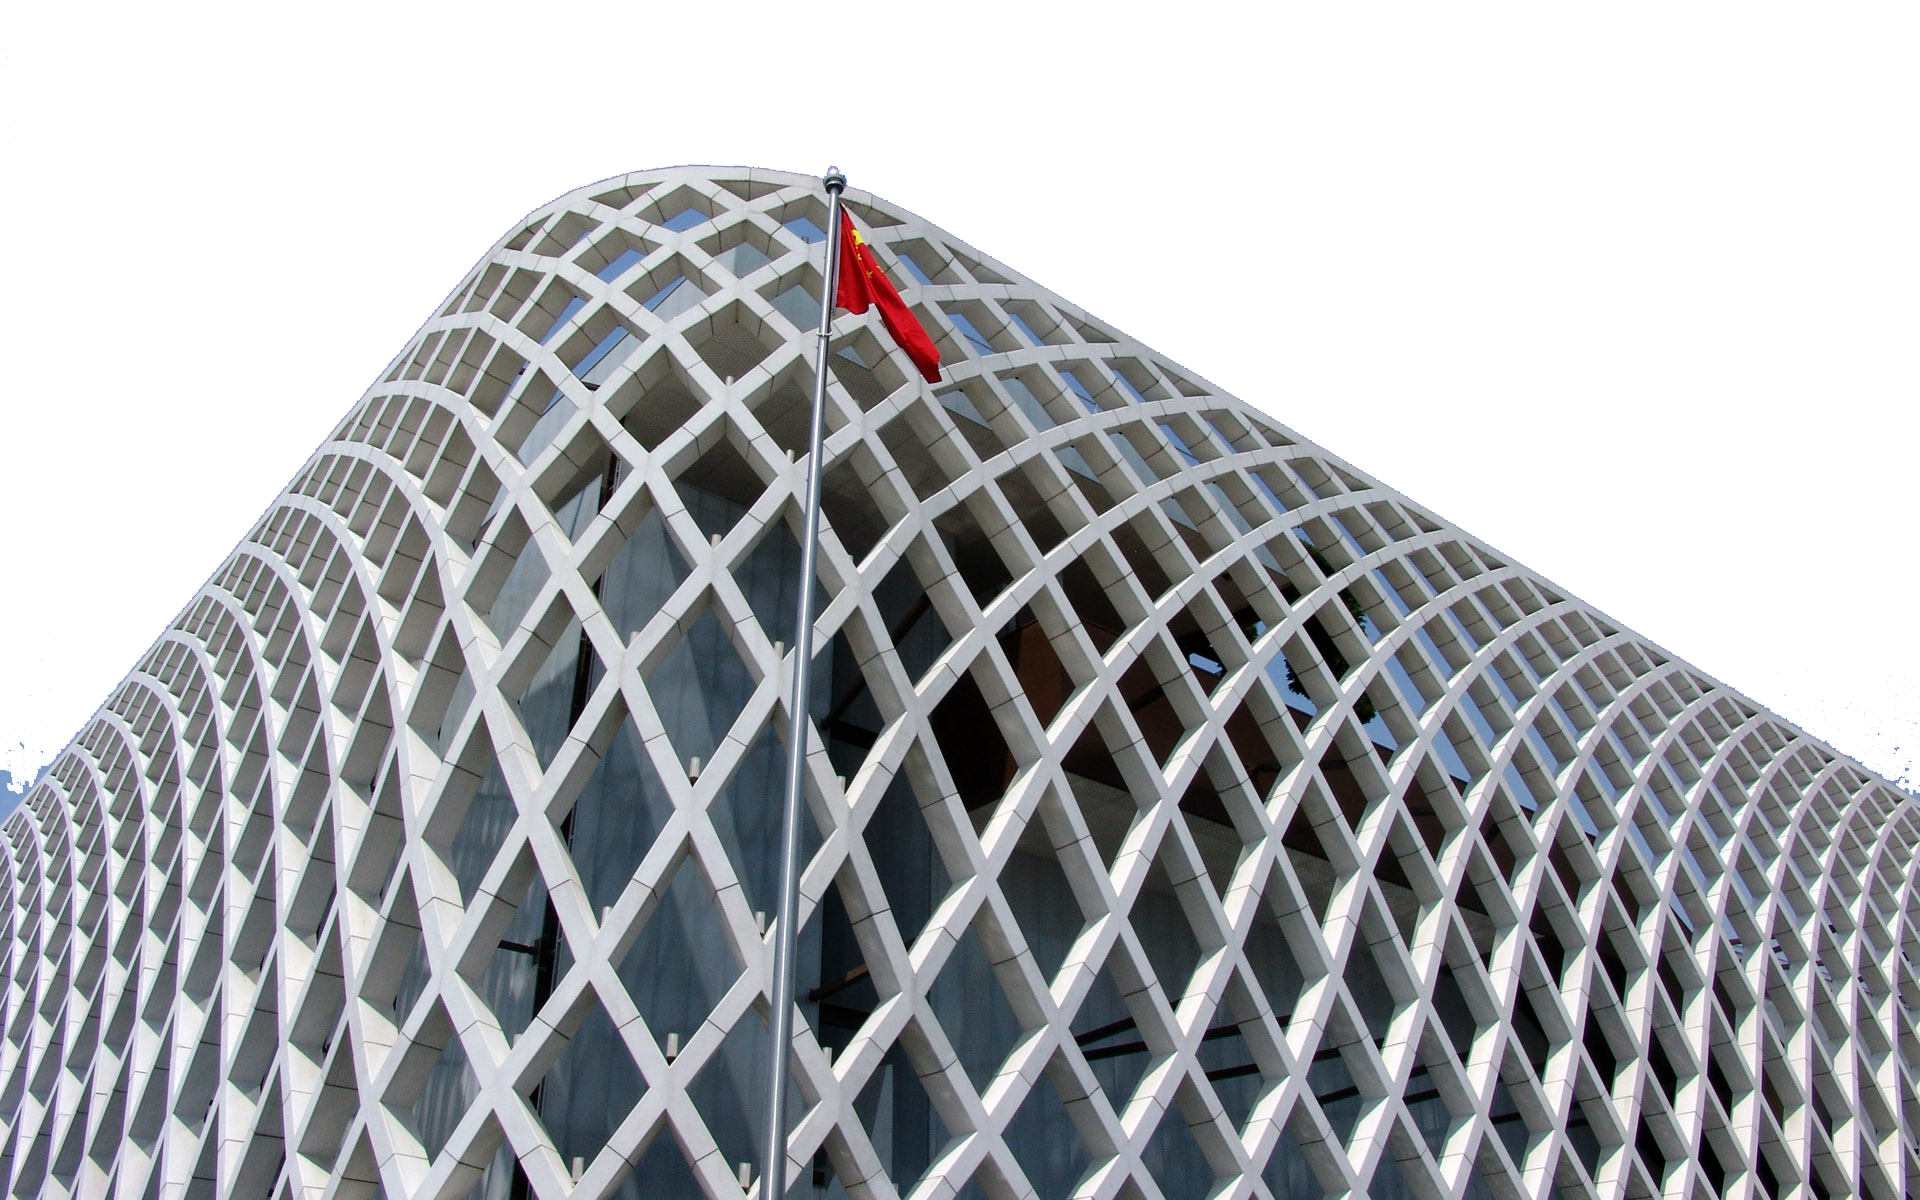 Building with Hoisted Flag of China PNG Image